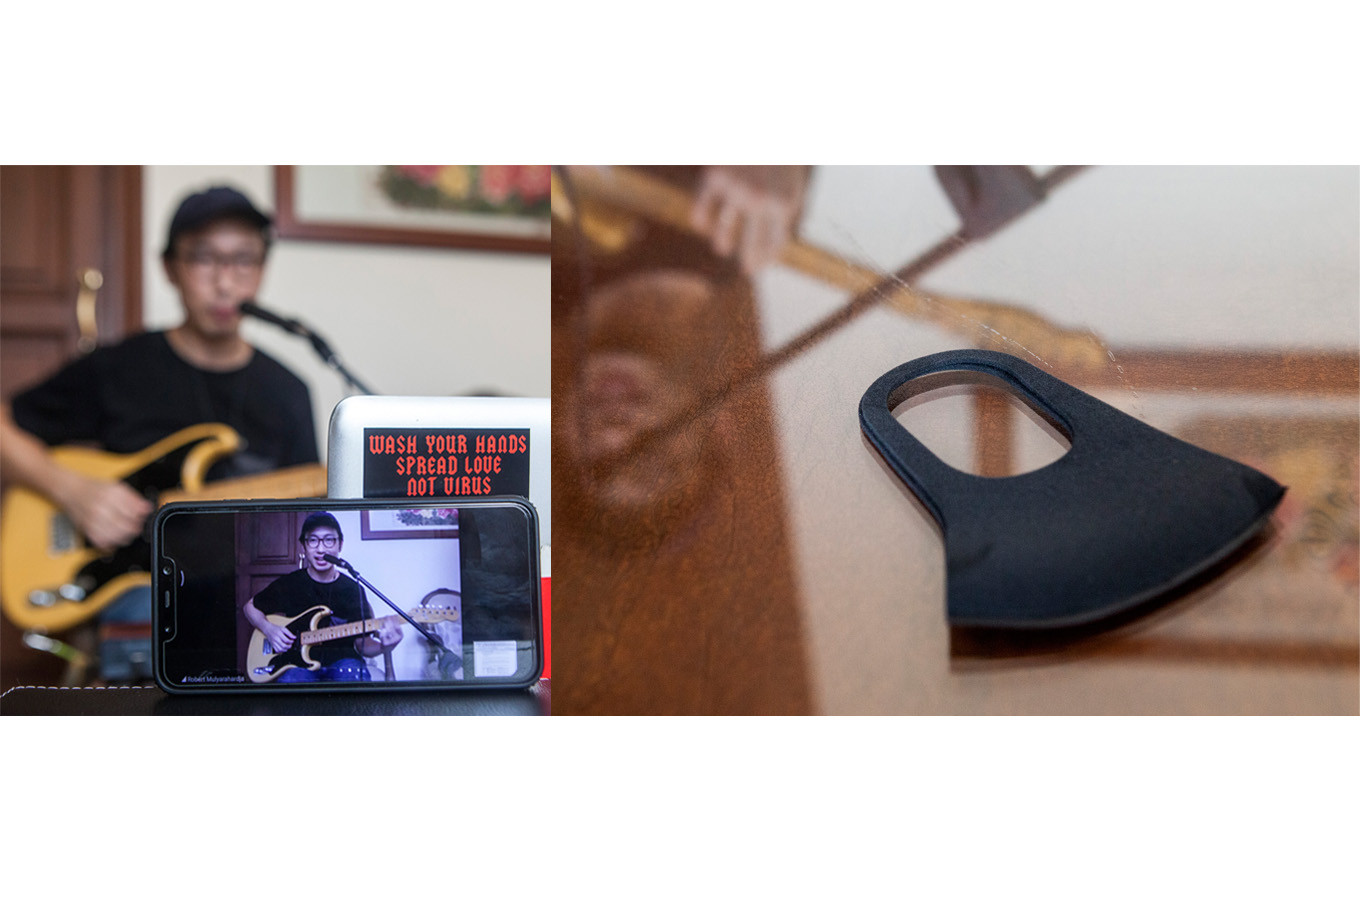 Robert Mulyahardja, a guitar coach with D'Jazz Music School, gives an online private lesson at his house in Pondok Indah, South Jakarta, on May 4. JP/Seto Wardhana.